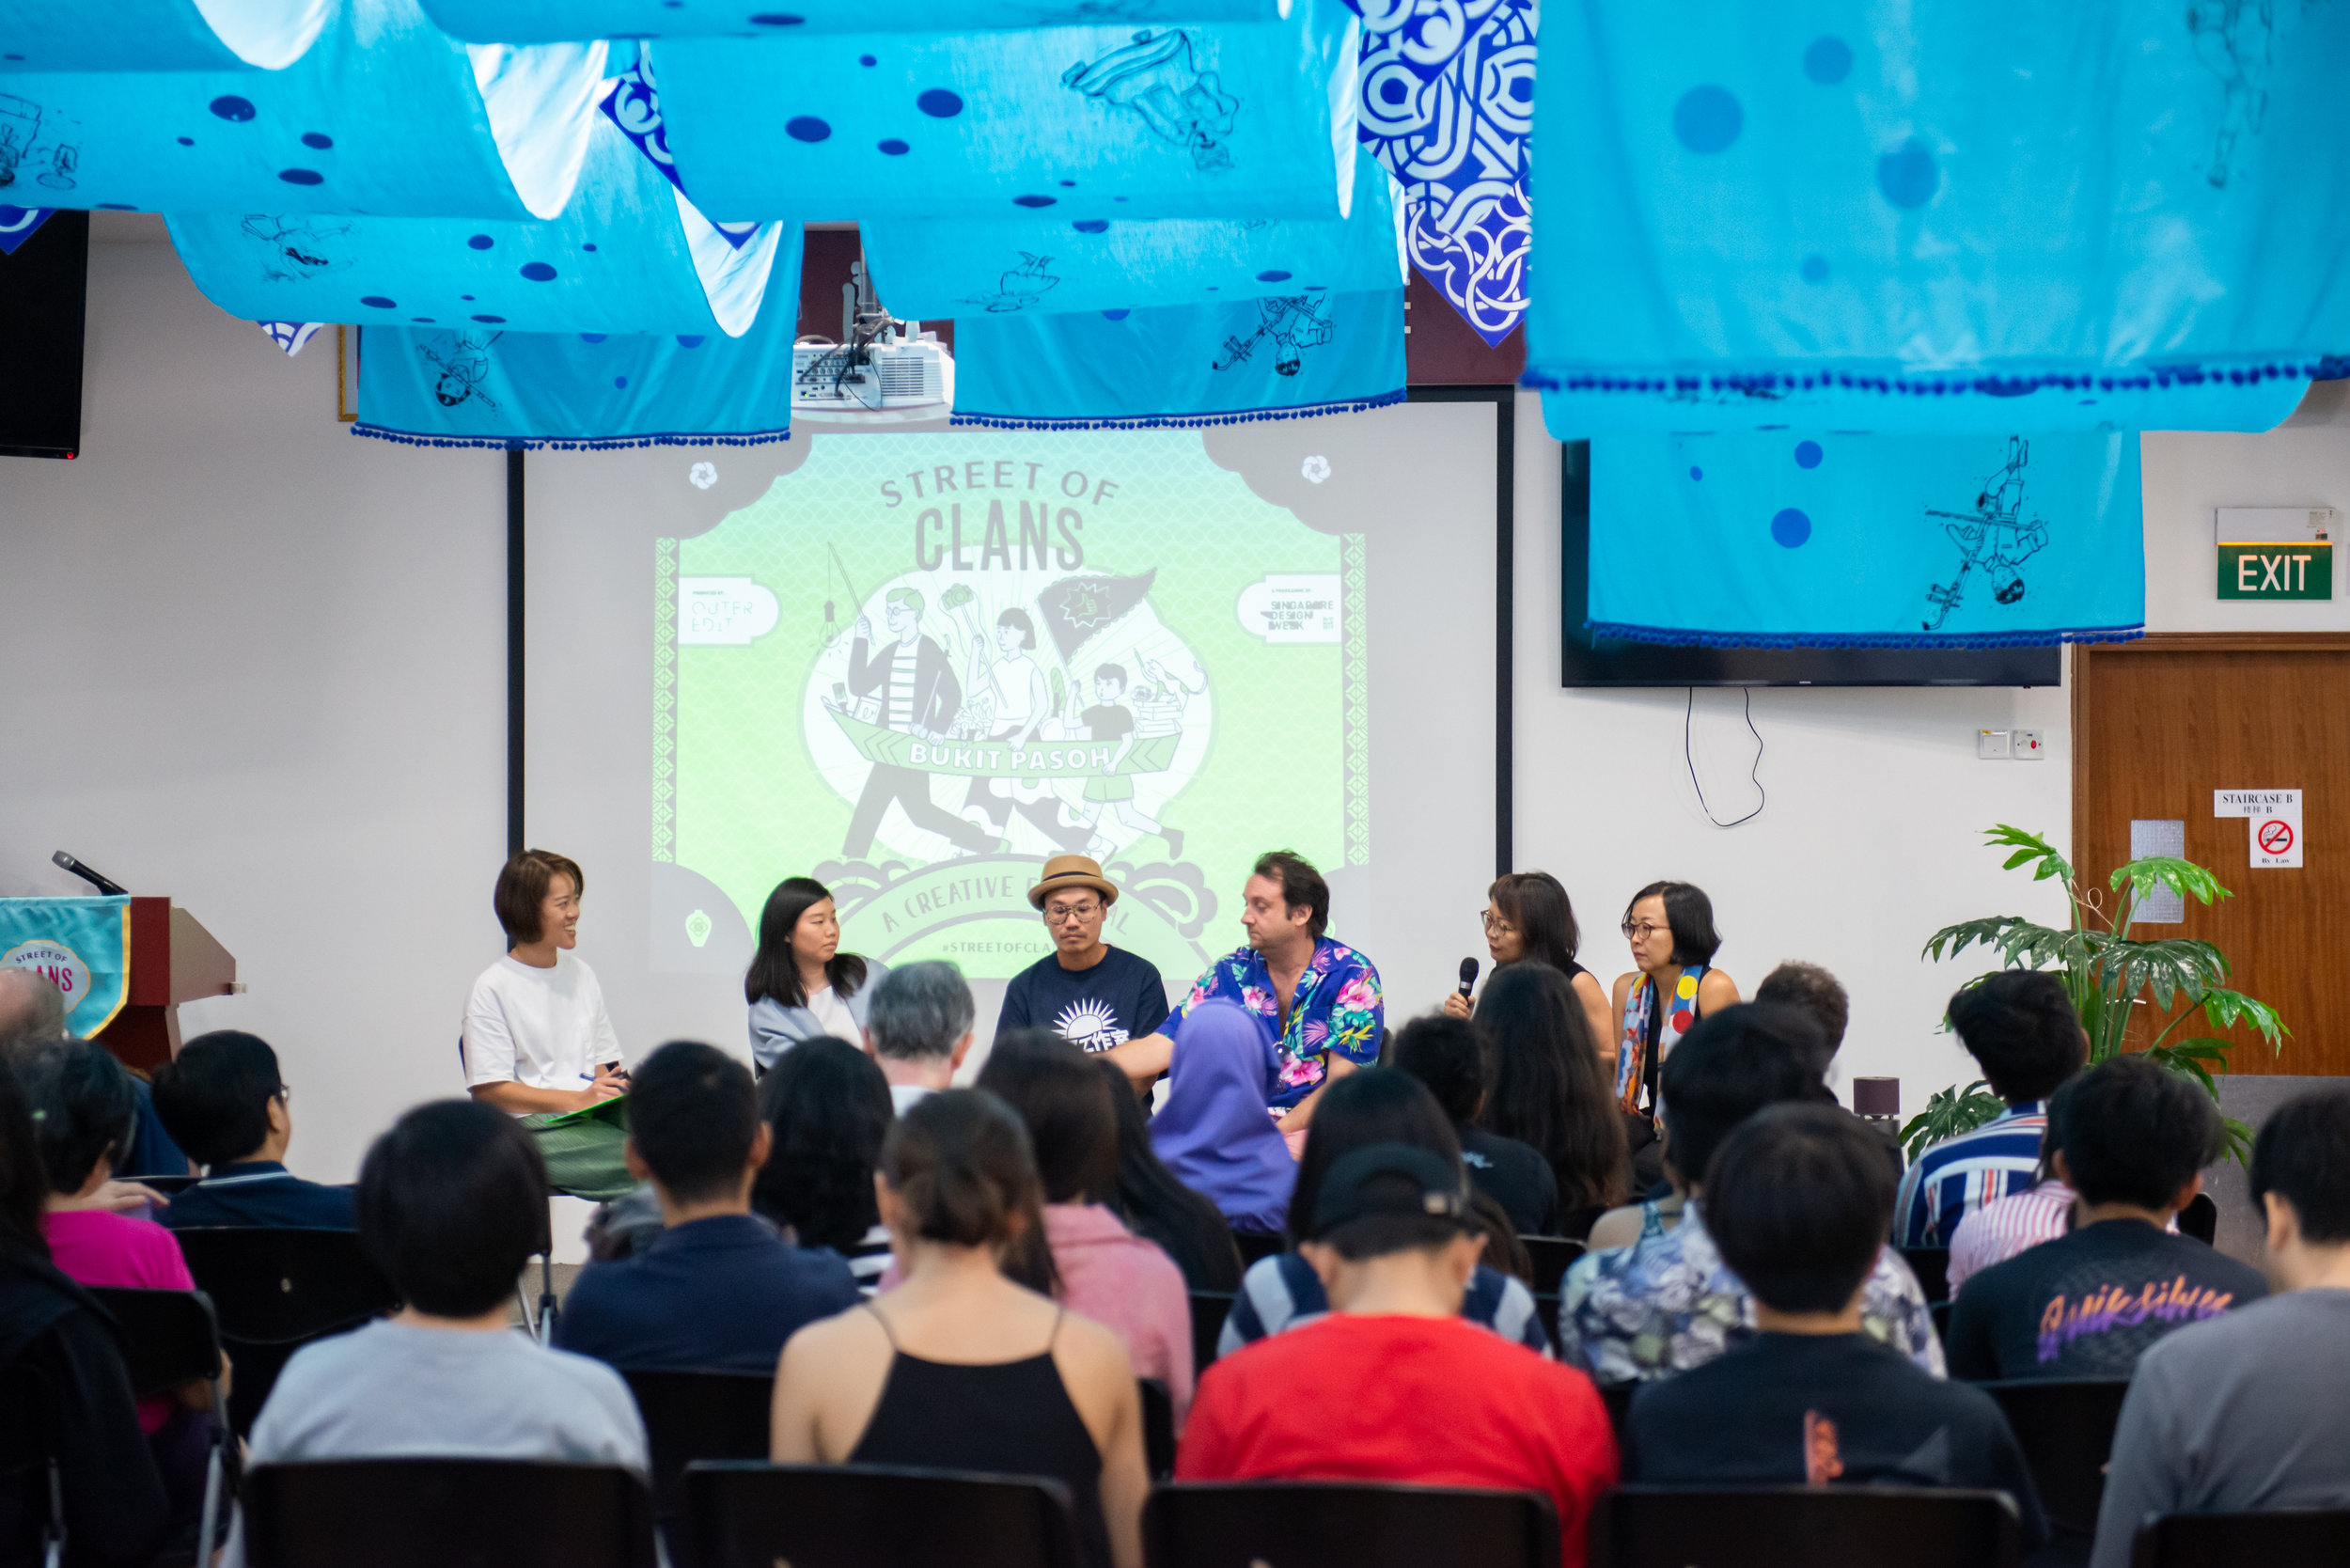 L-R: Jacqueline Chang; Cherin Tan and Jason Tong of LAANK; Steve Lawler of MOJOKO; and Sari and Santhi Tunas from Binary Style discussing how they've embraced local heritage to create new work